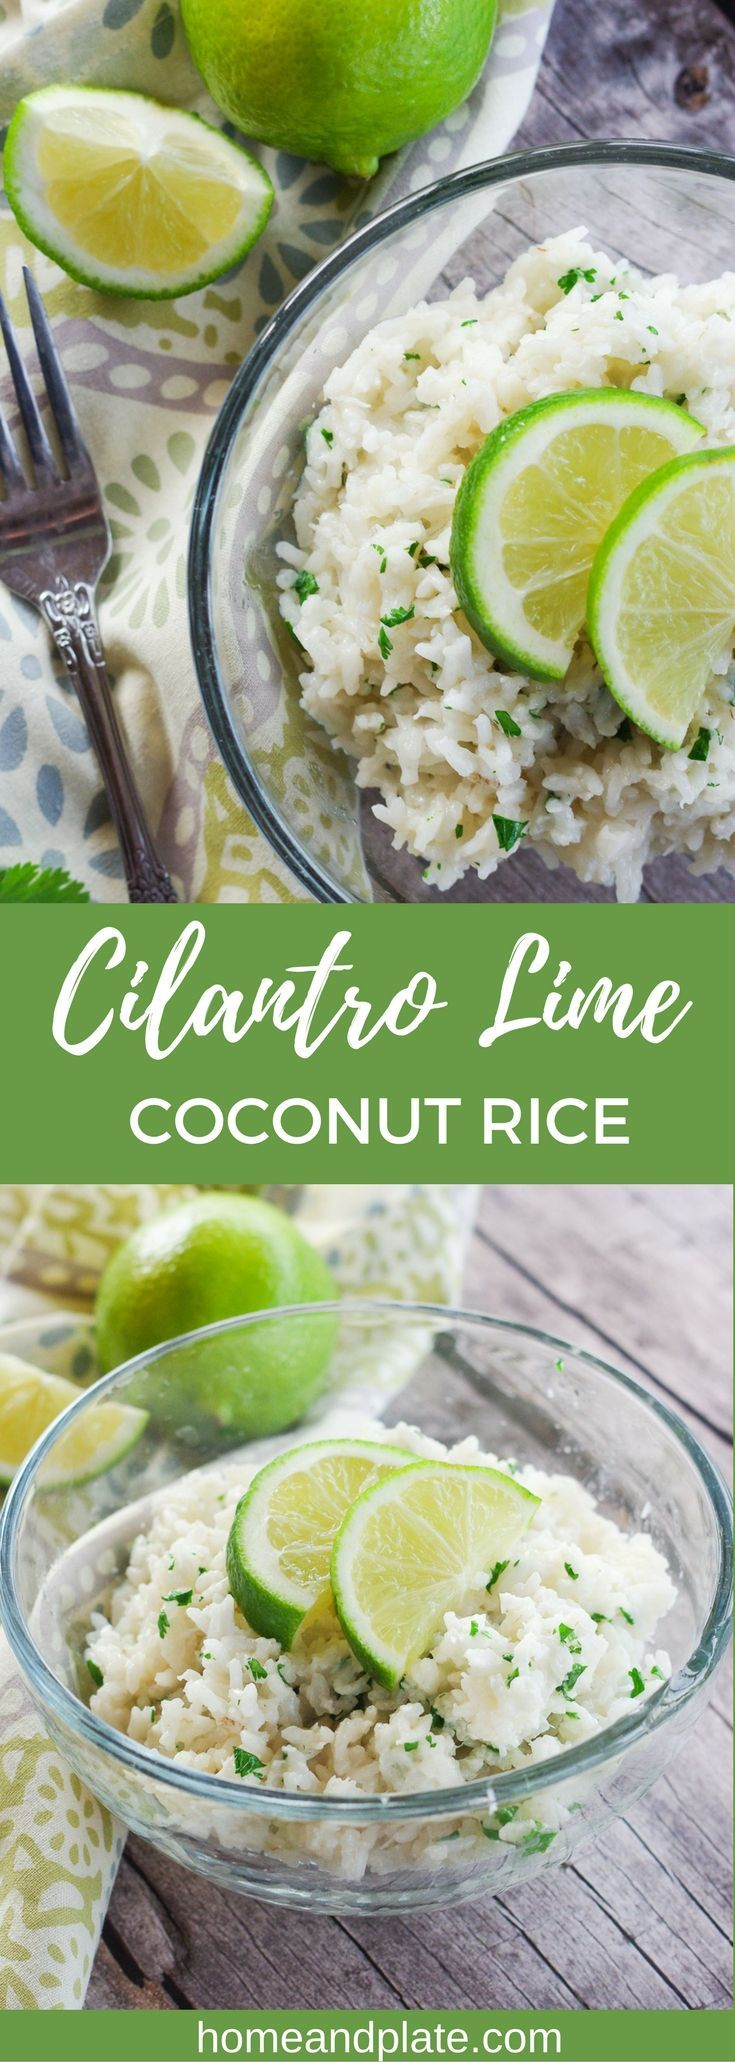 Cilantro Lime Coconut Rice | www.homeandplate.com | This easy rice recipe is cooked in coconut milk and flavored with fresh lime juice and cilantro. It's the perfect side dish to any Caribbean dinner.